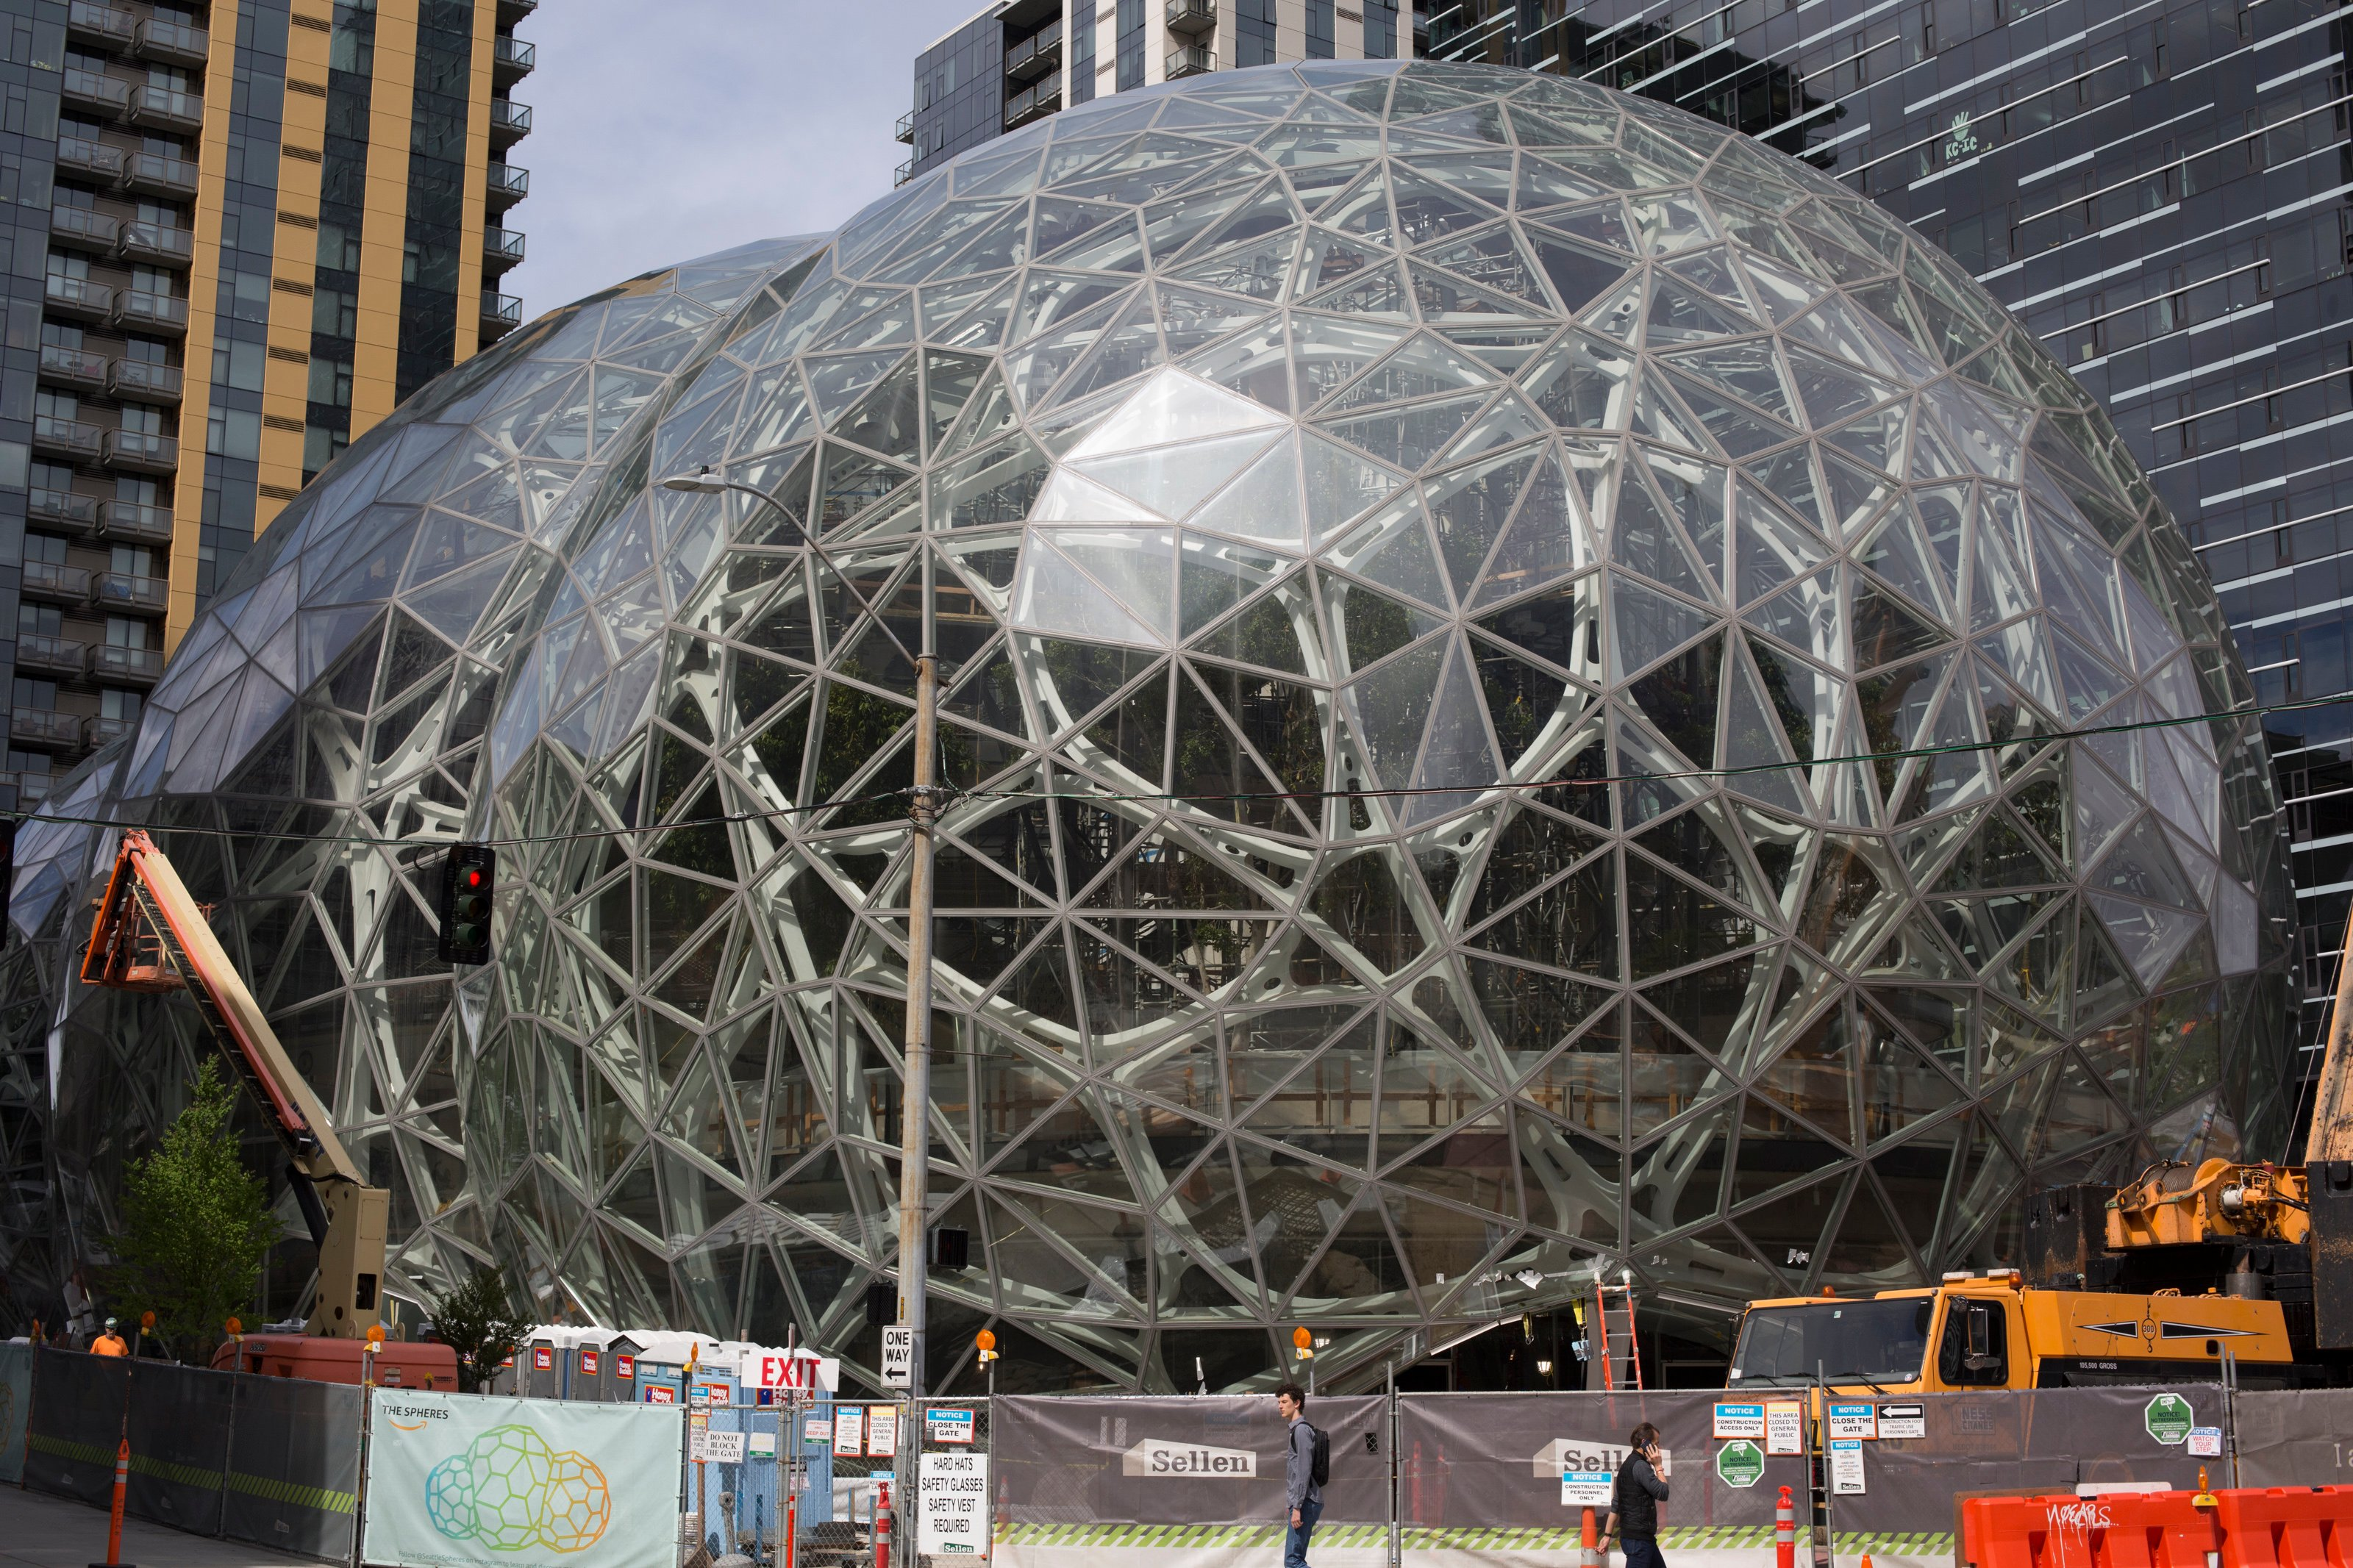 People walk past the signature glass spheres under construction at the Amazon corporate headquarters on June 16, 2017 in Seattle, Washington. (Photo by David Ryder/Getty Images)